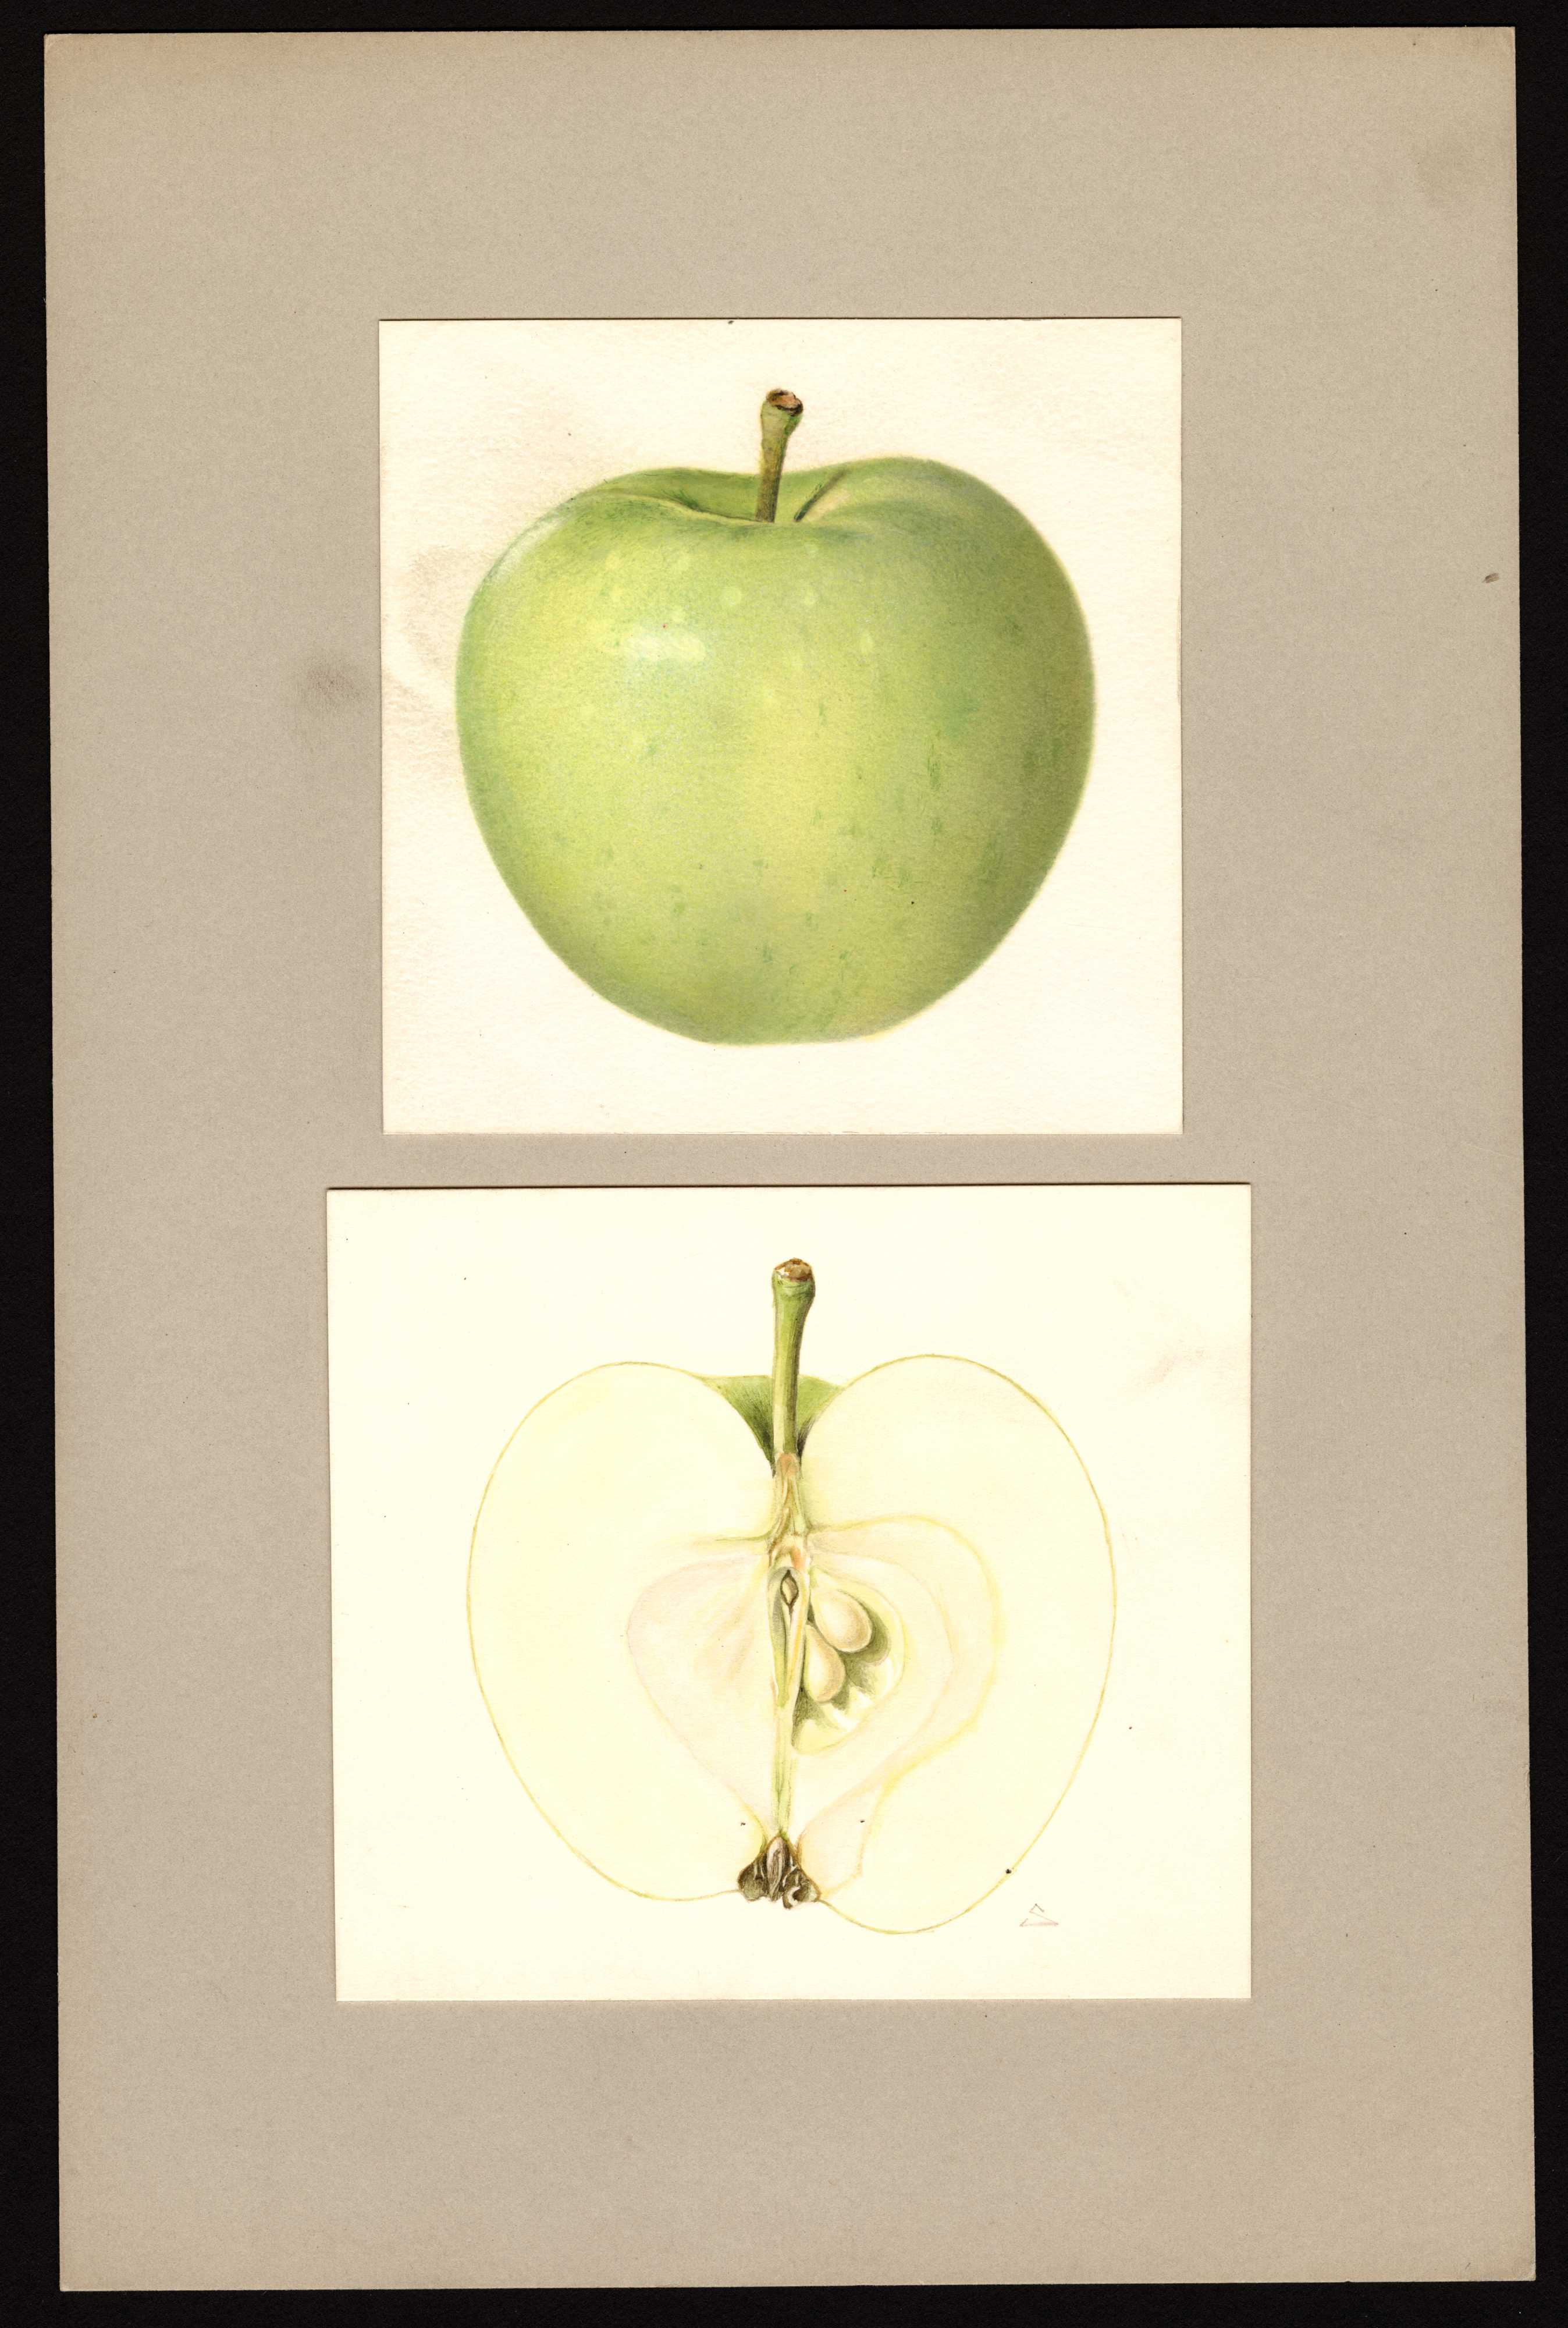 green apple with faint white spots